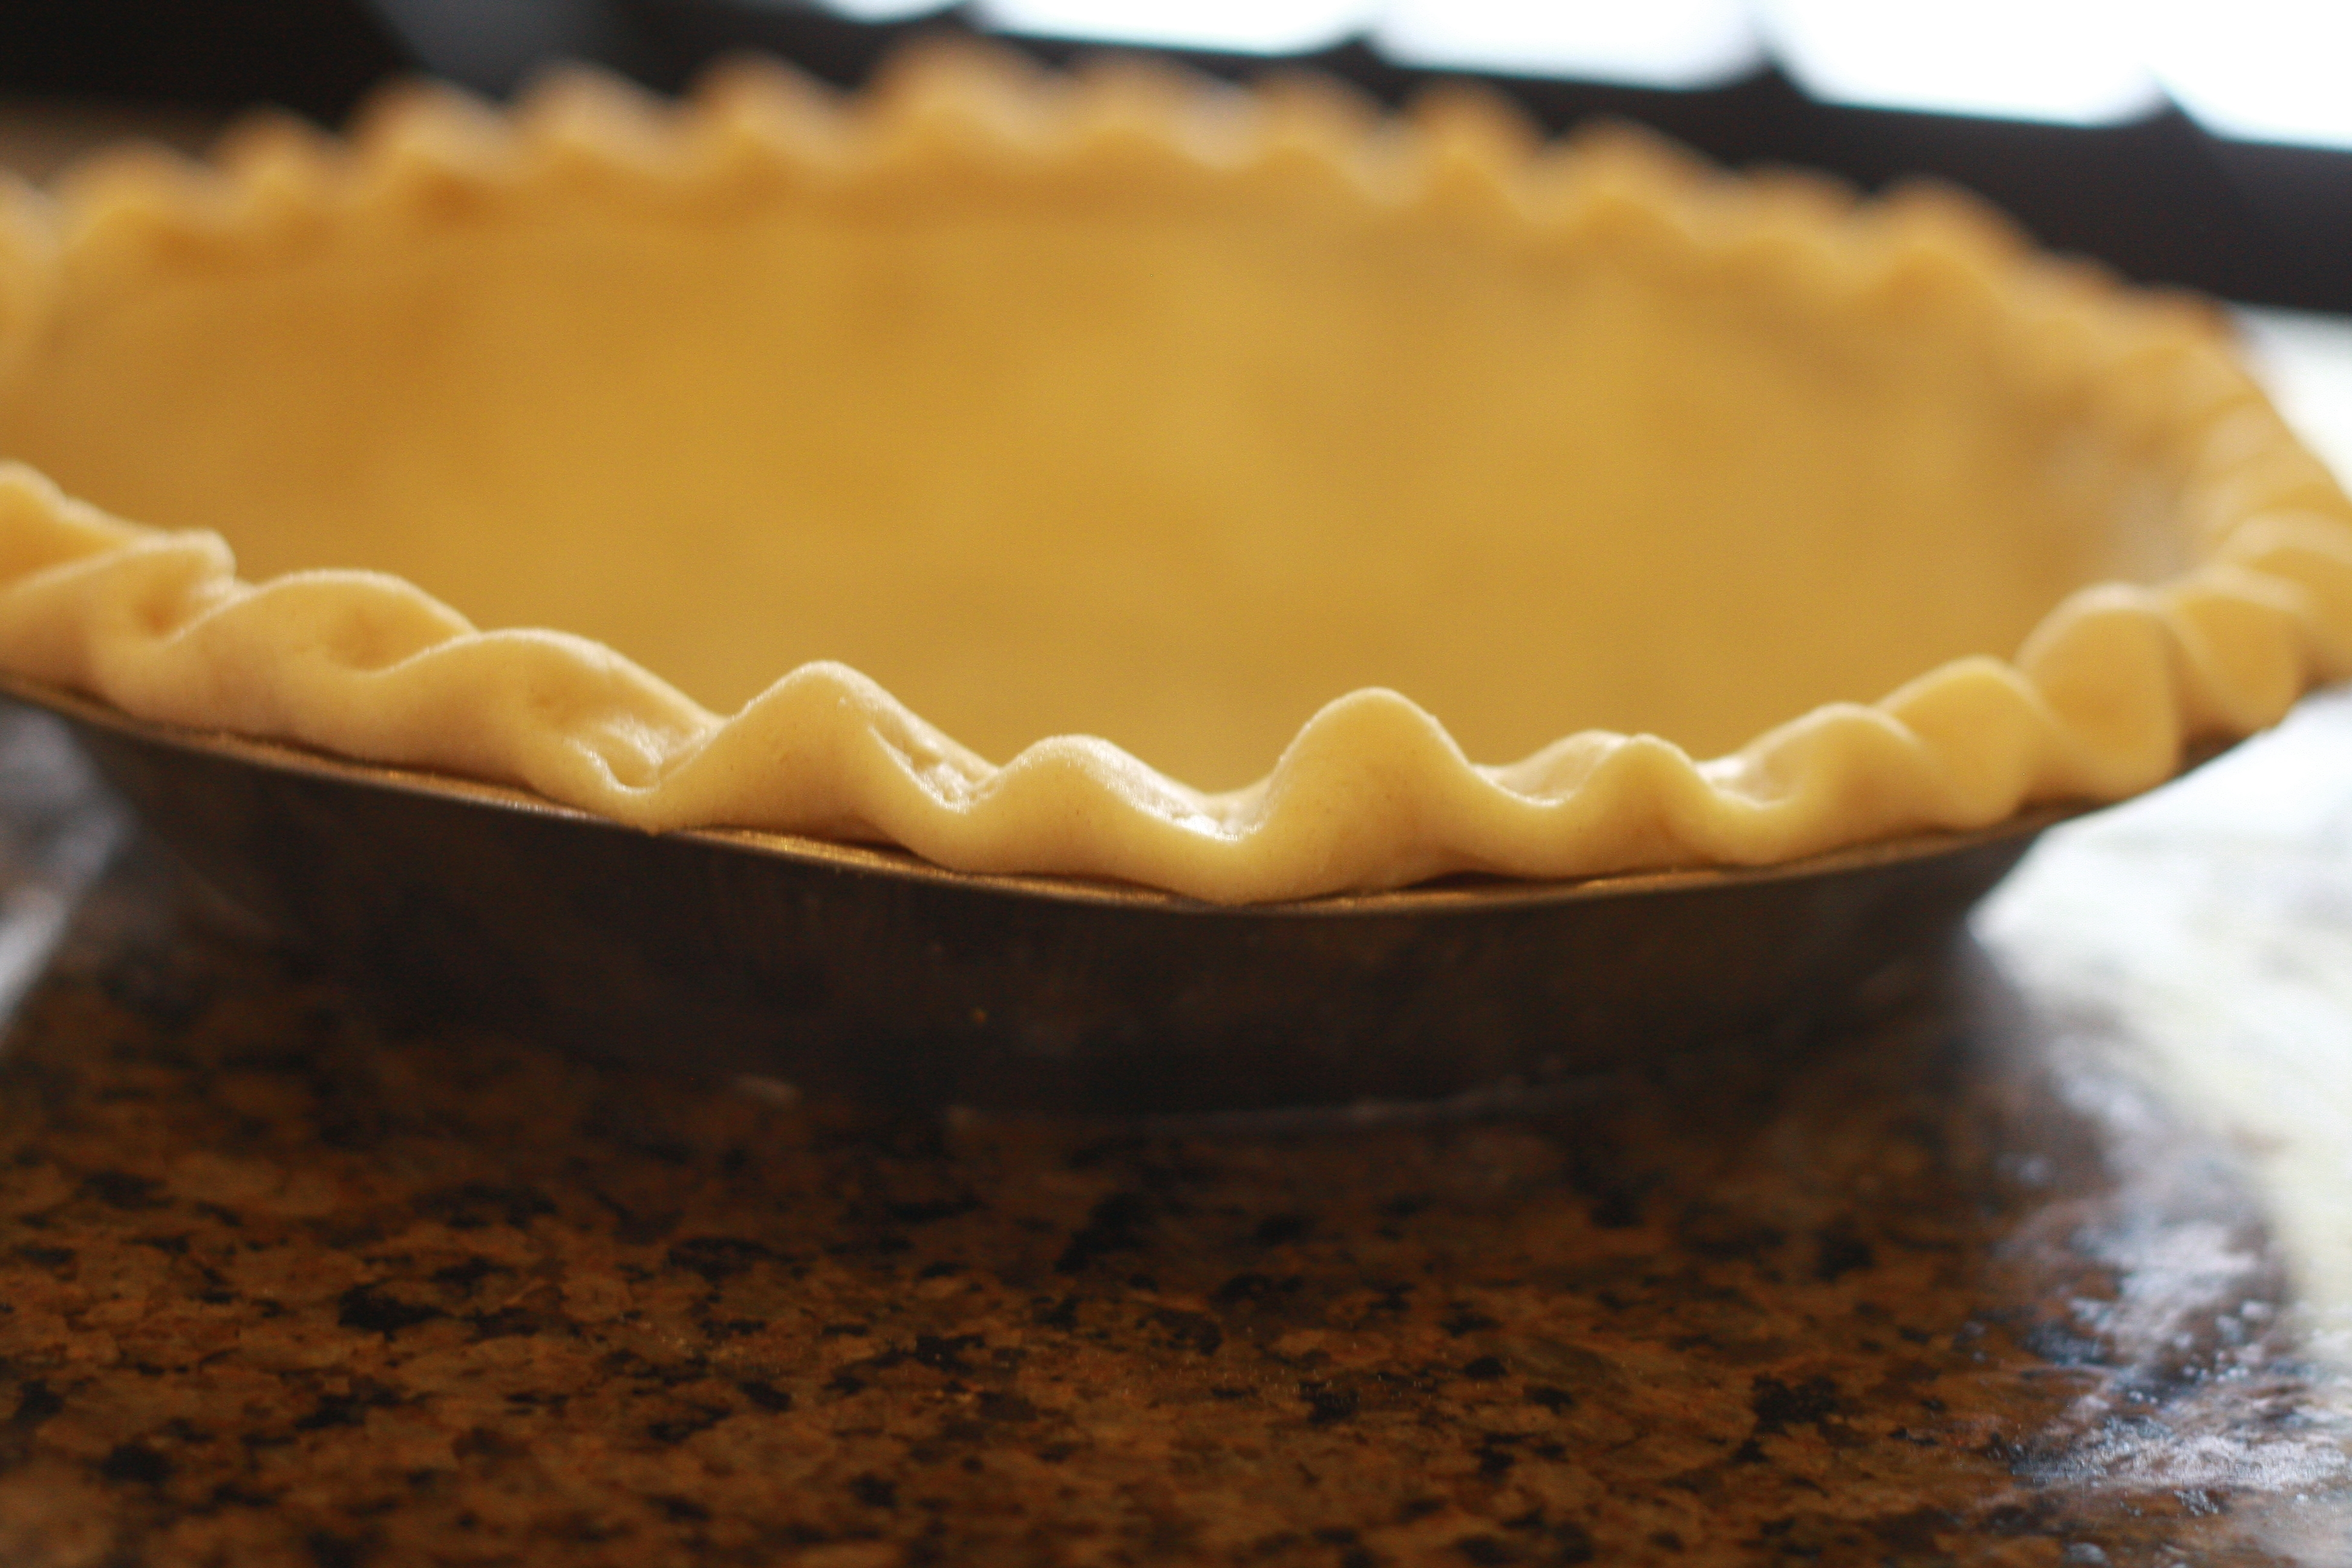 Crimping the pie crust for decoration keeps the filling in place. This year, National Pie Day fell on Jan. 23, 2019.